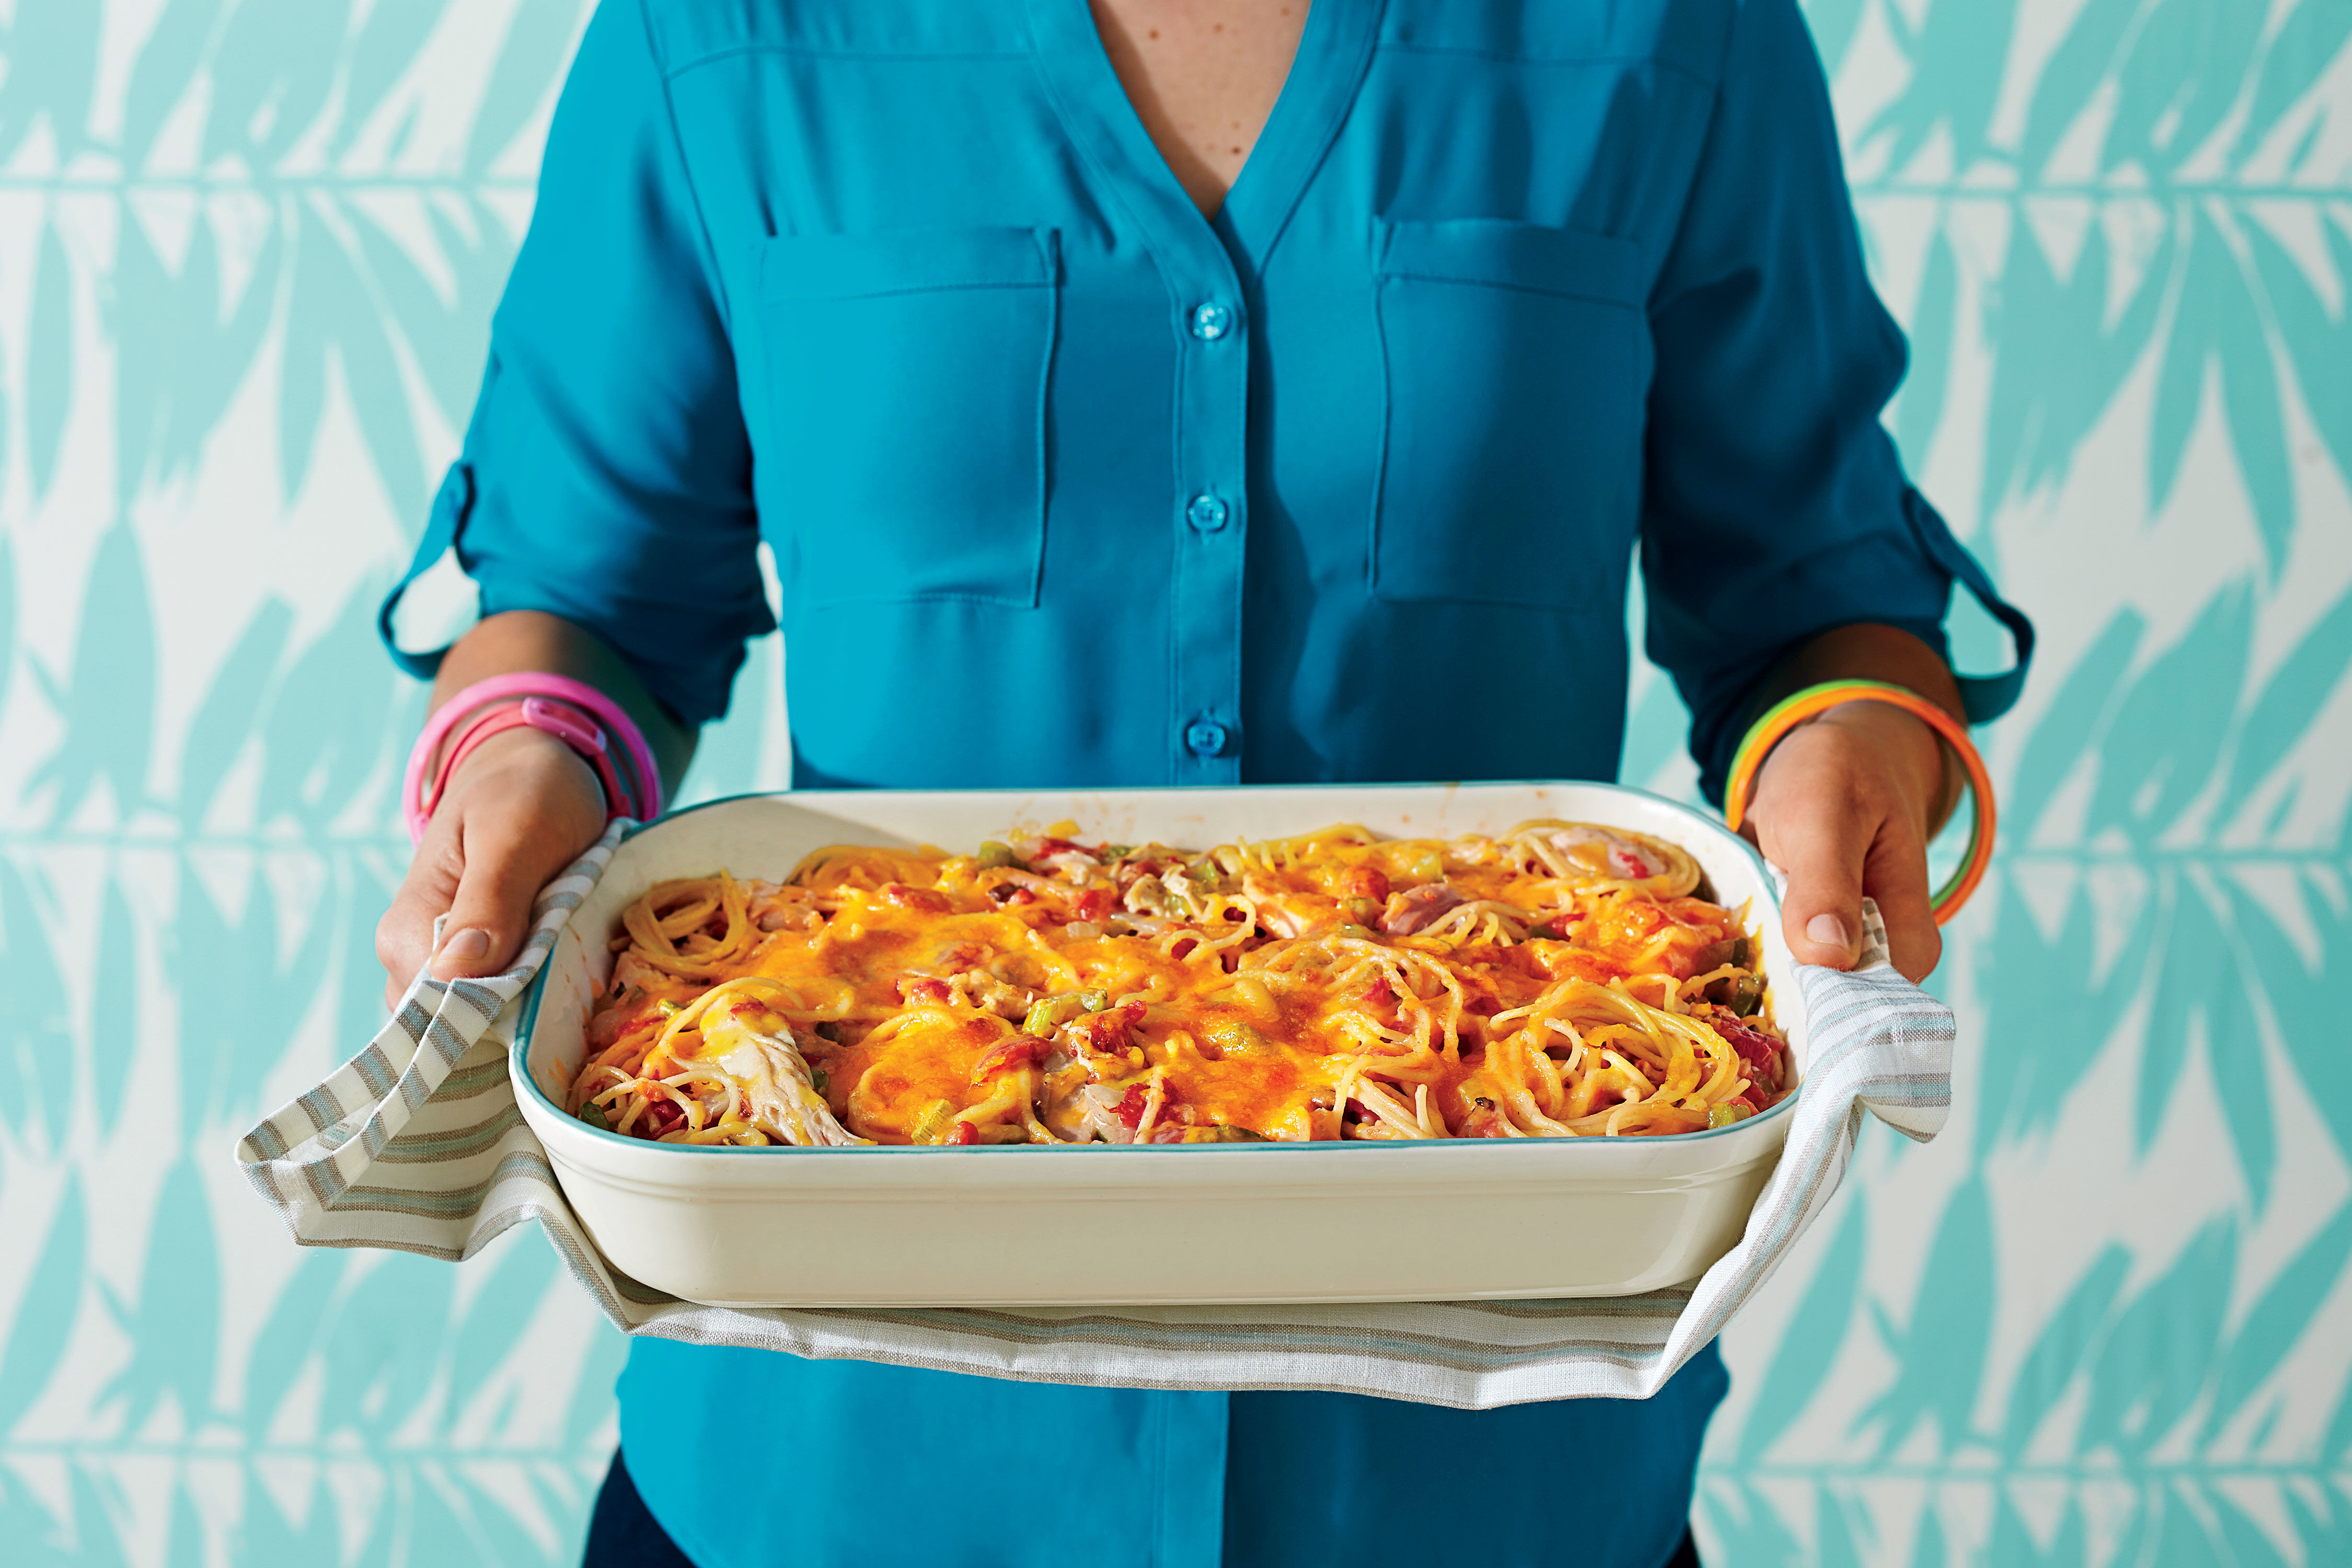 WATCH: Why Chicken Spaghetti Casserole Will Always Have a Place On Our Table